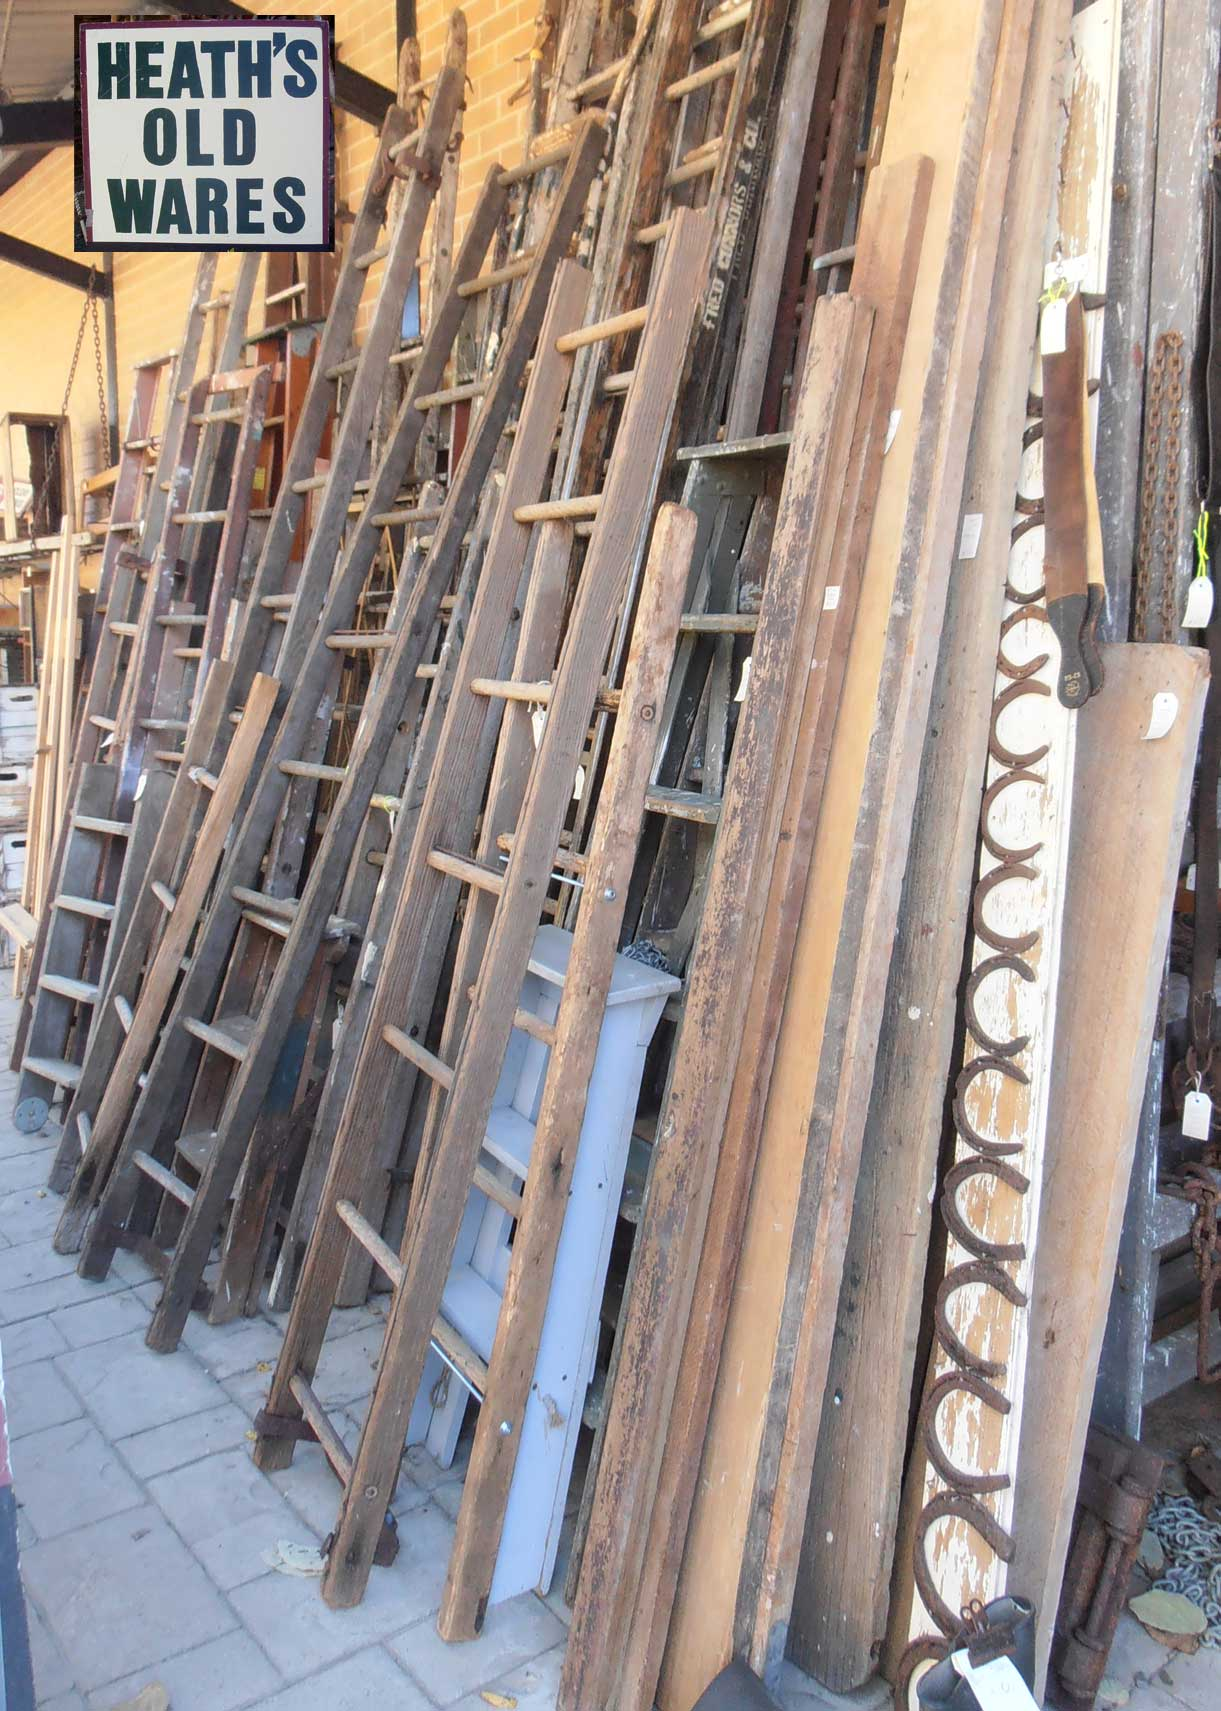 antique and vintage ladders for sale at heaths antiques bangalow